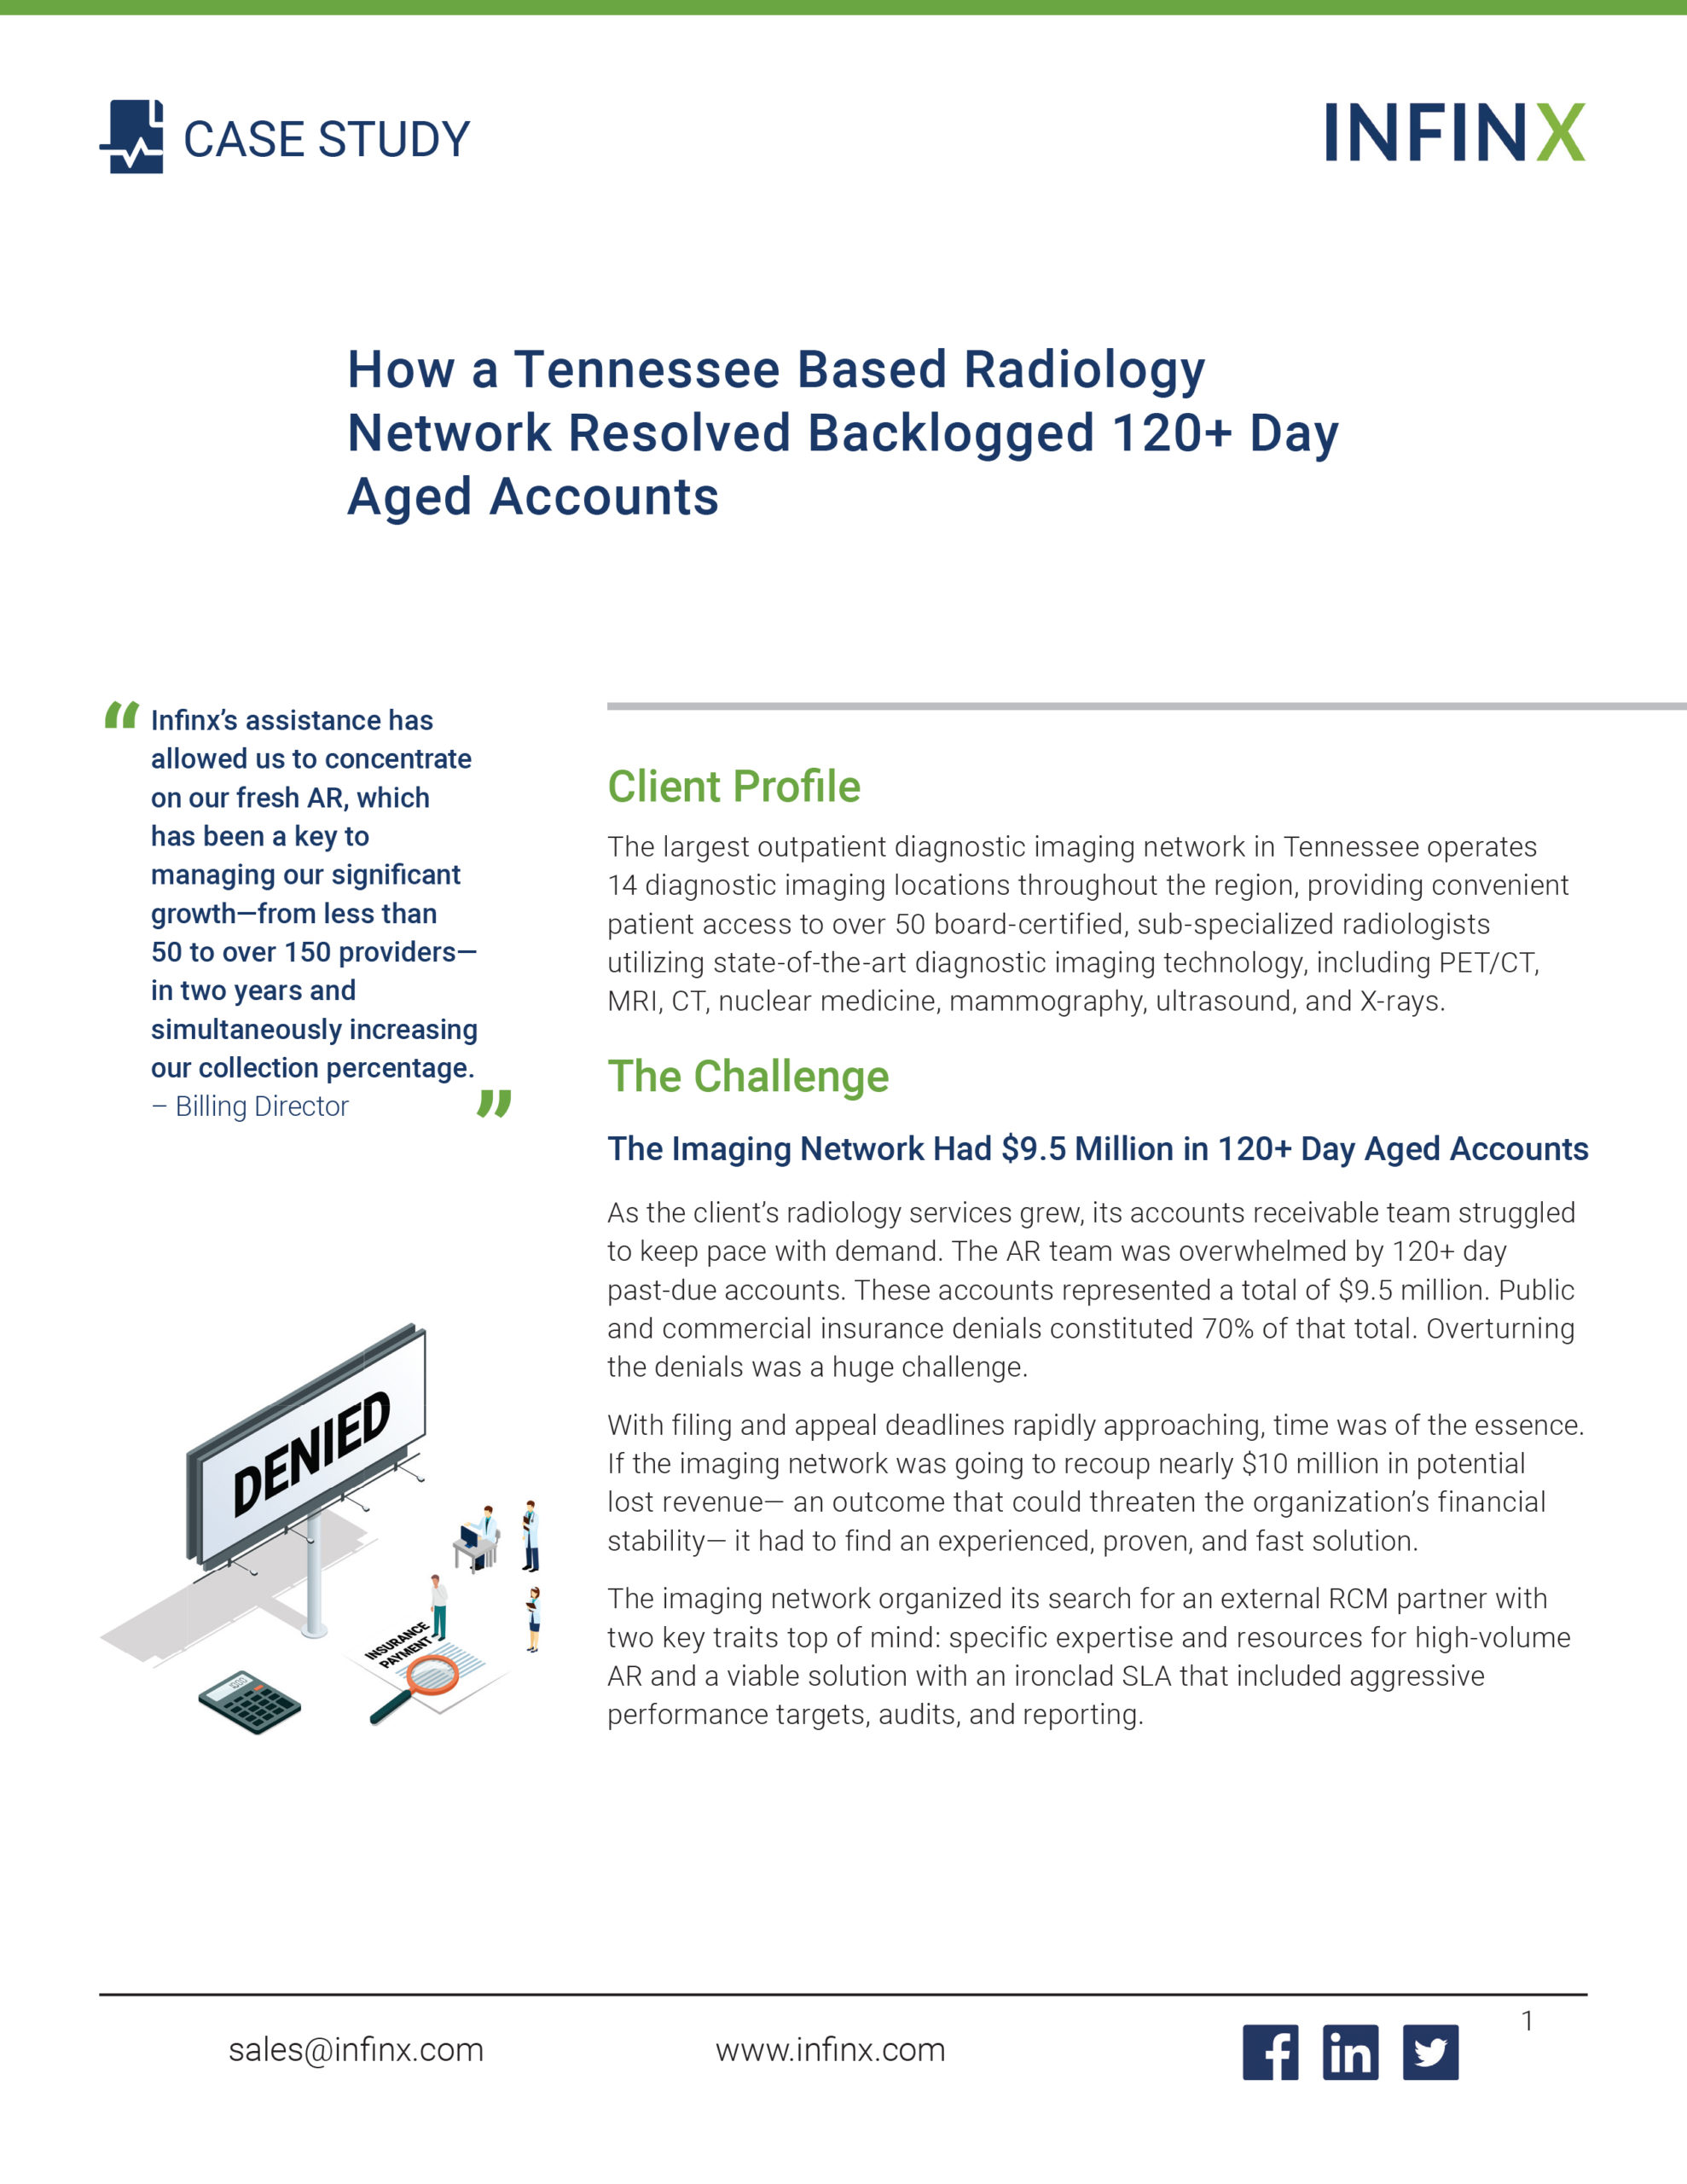 Infinx-Case-Study-How-a-Tennessee-Based-Radiology-Network-Resolved-Backlogged-120-Day-Aged-Accounts-April-14-2020-p1